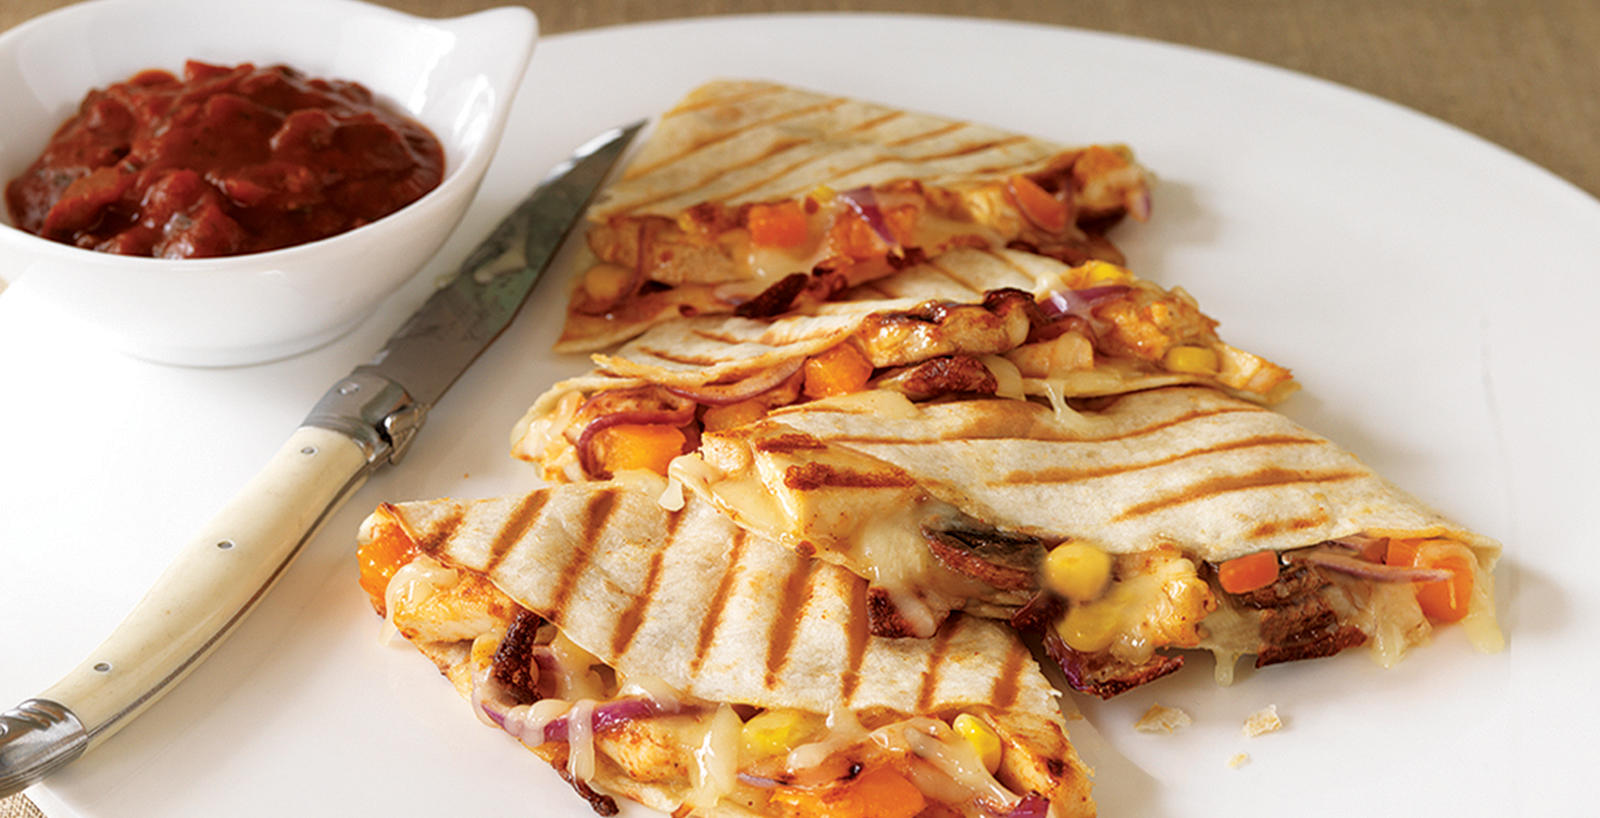 quesadillas quesadillas chicken quesadillas quesadillas benedict